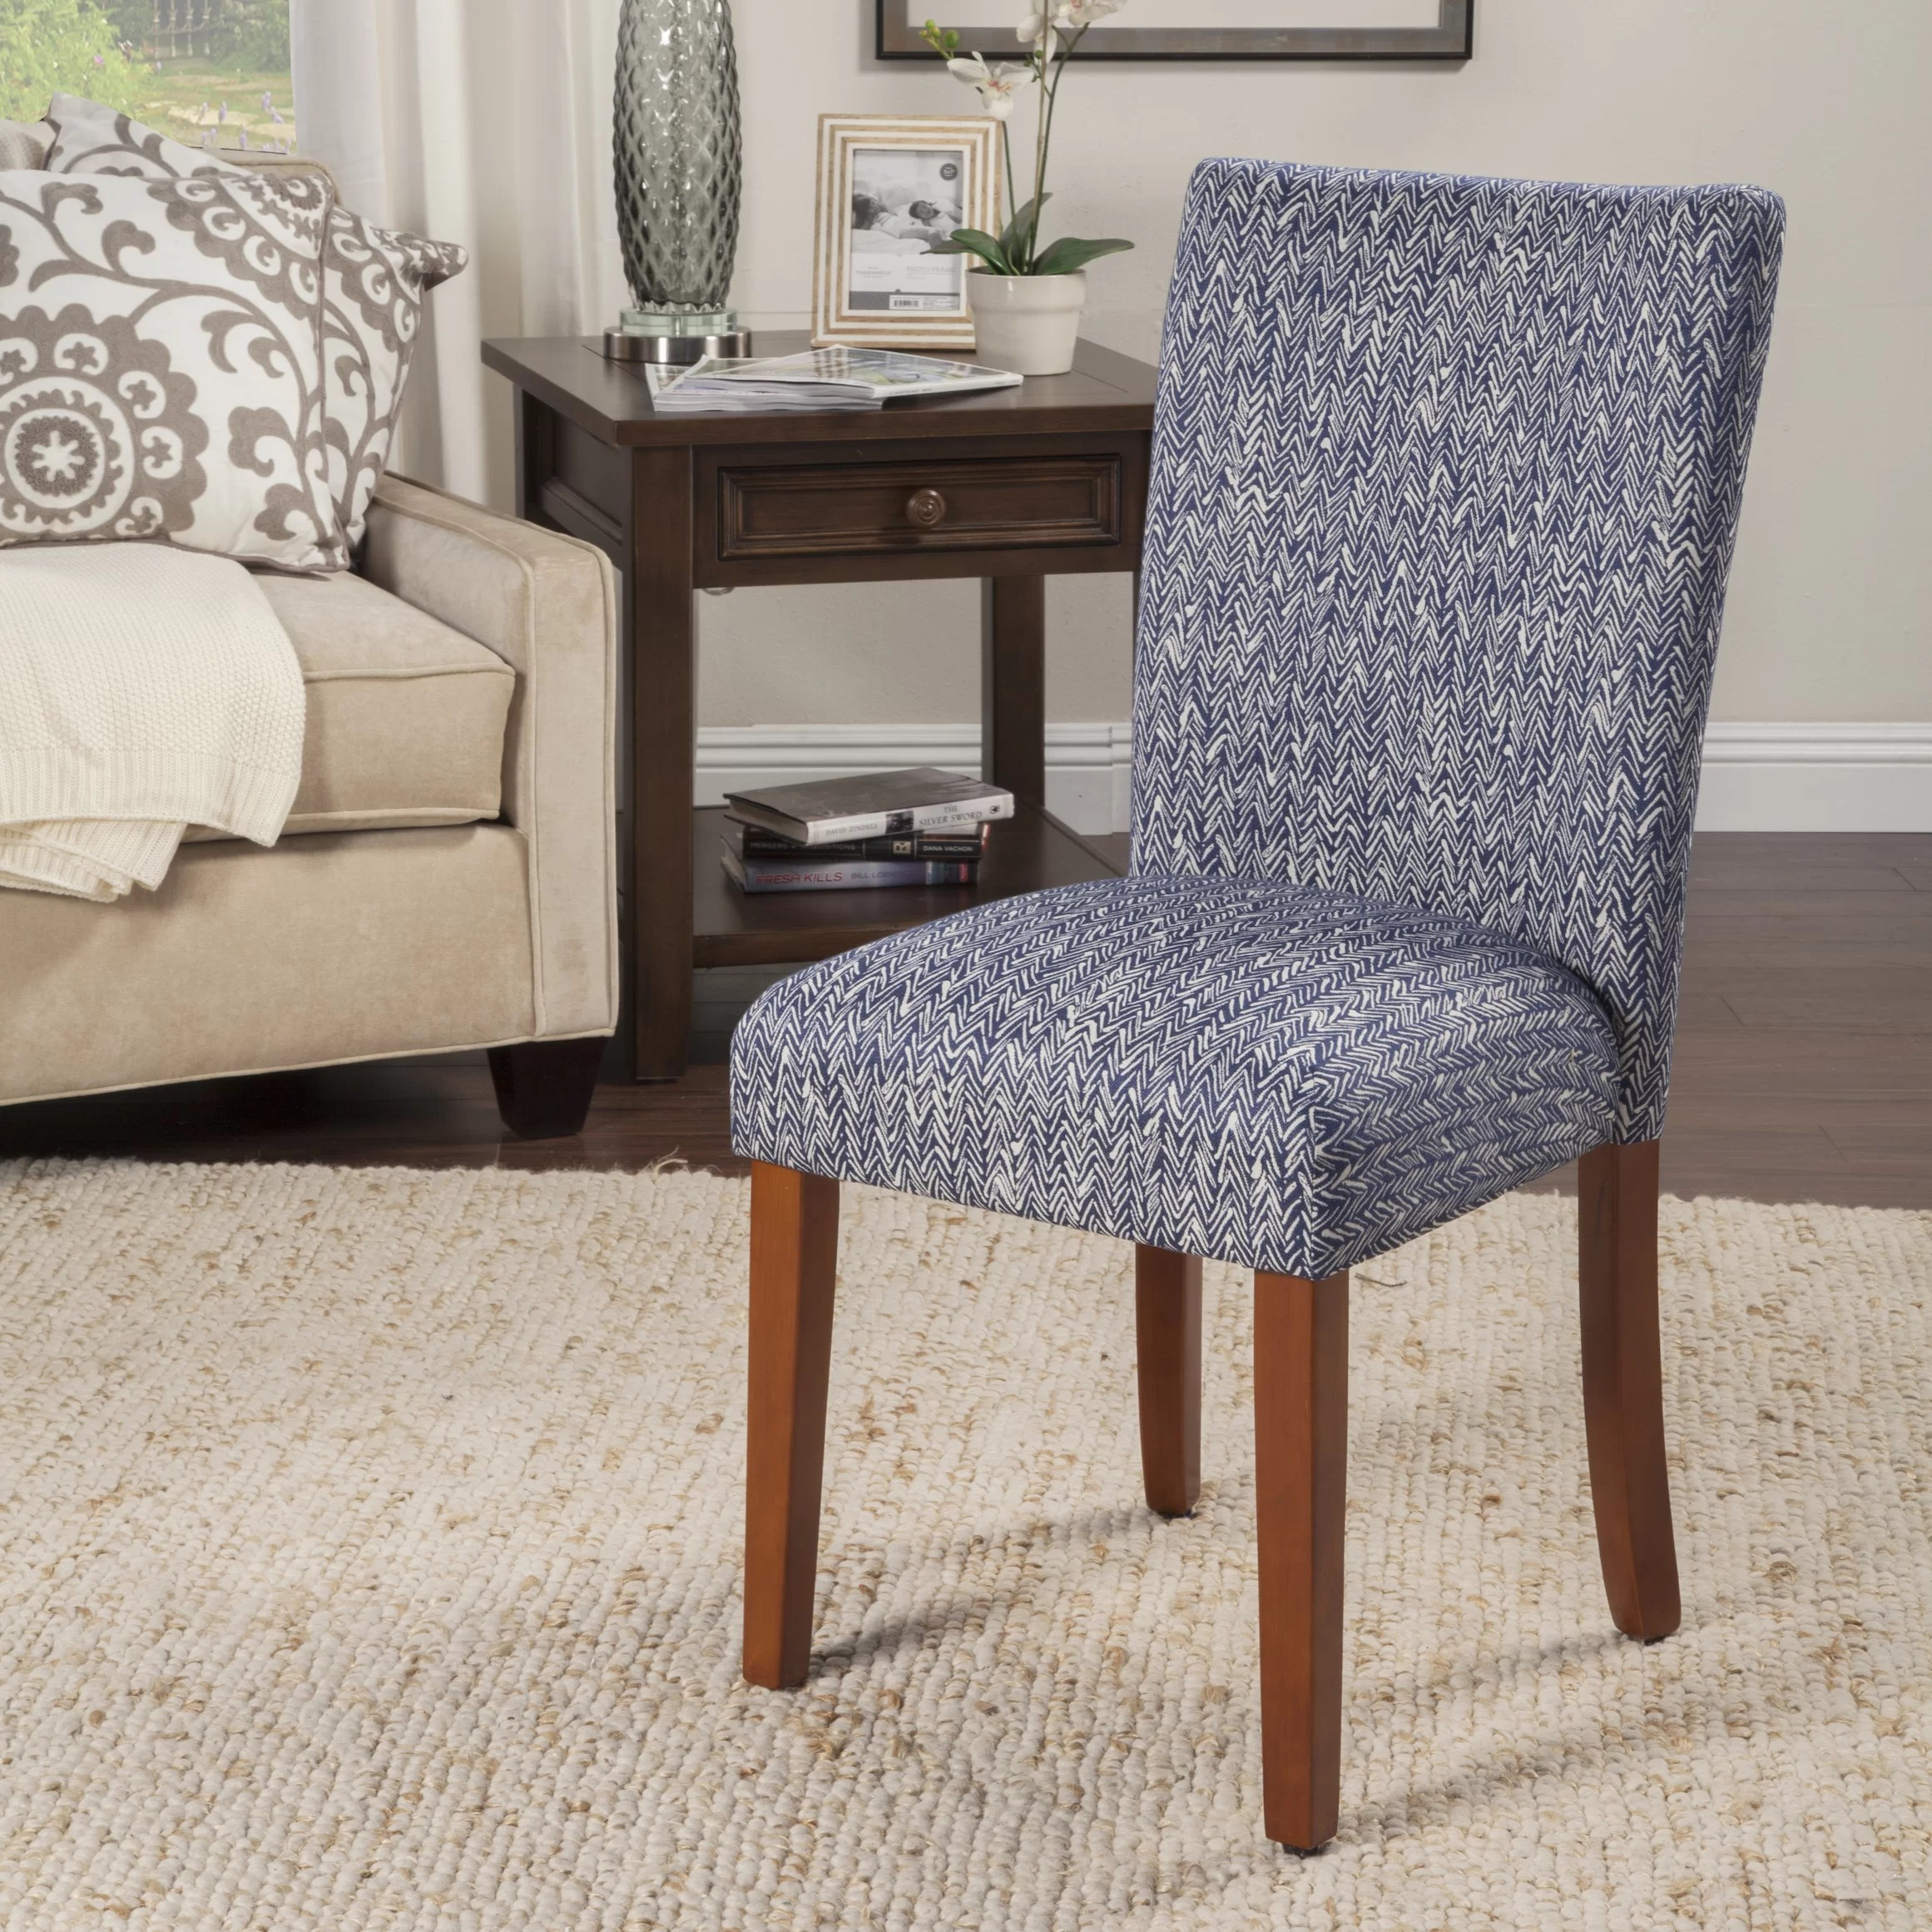 Blue Parsons Chair Homepop Upholstered Parsons Chair In Blue And Reviews Wayfair